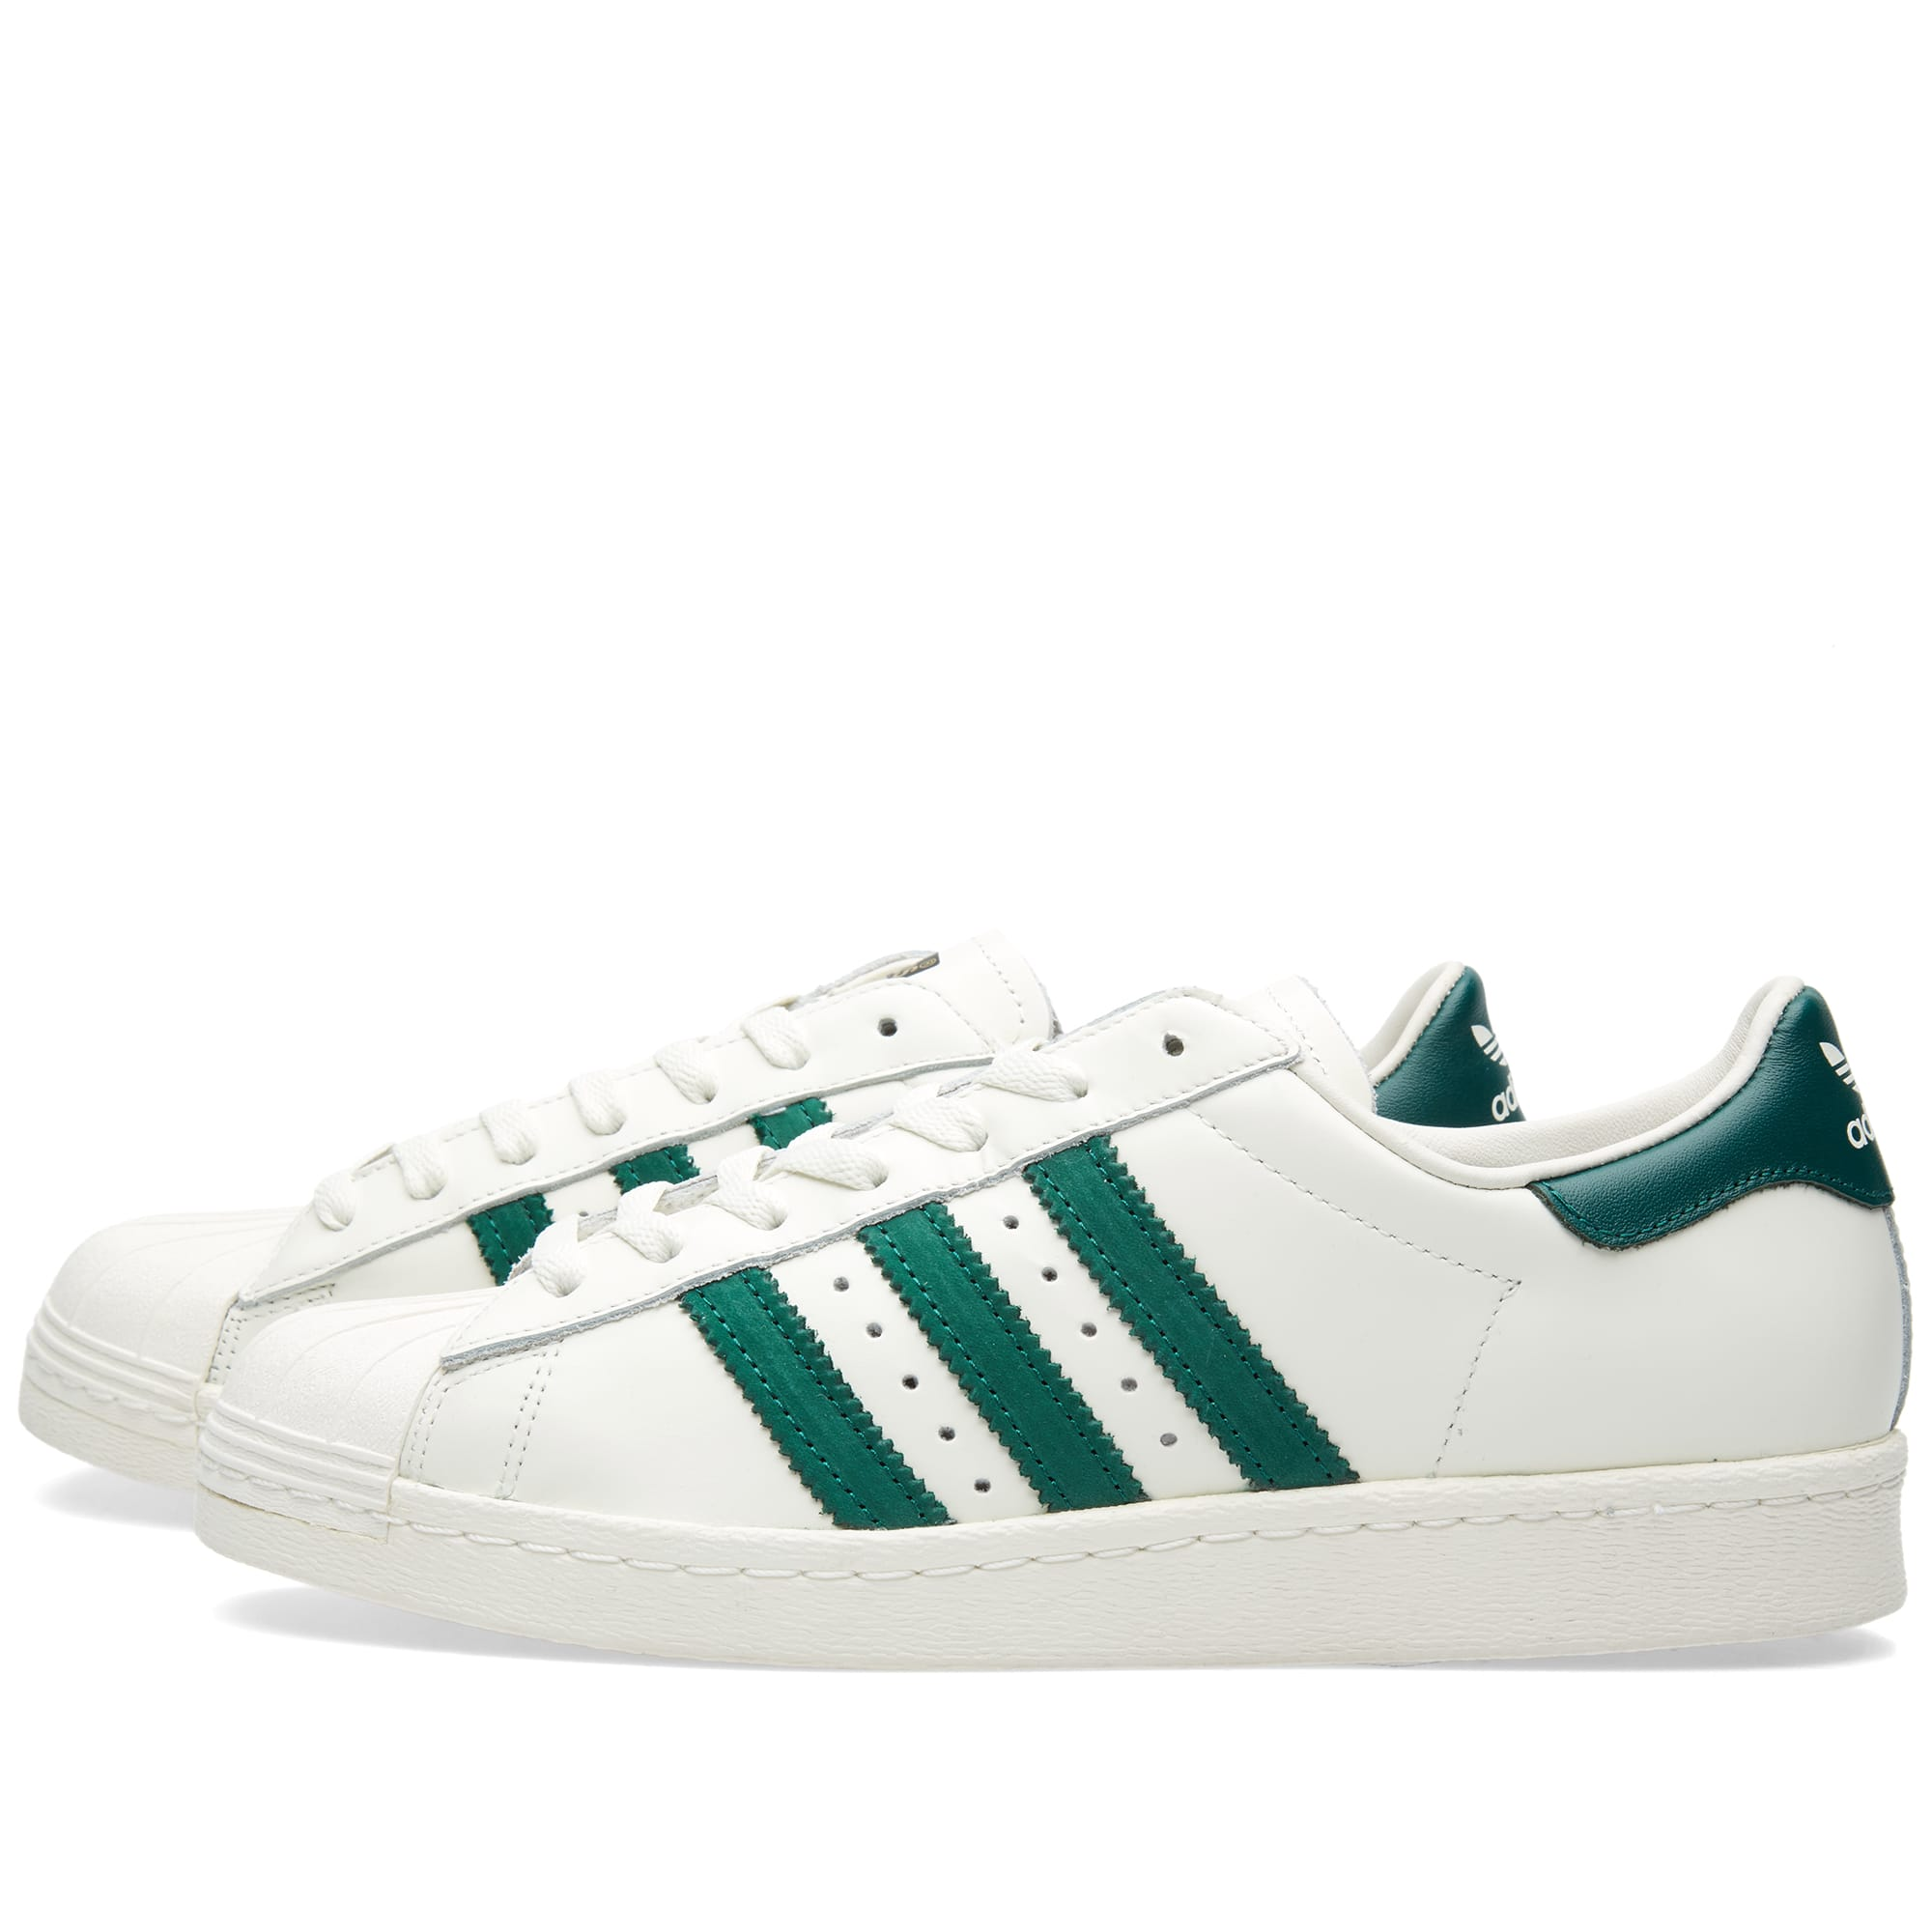 Superstar 80s Delux Shoes Vintage WhiteGreen